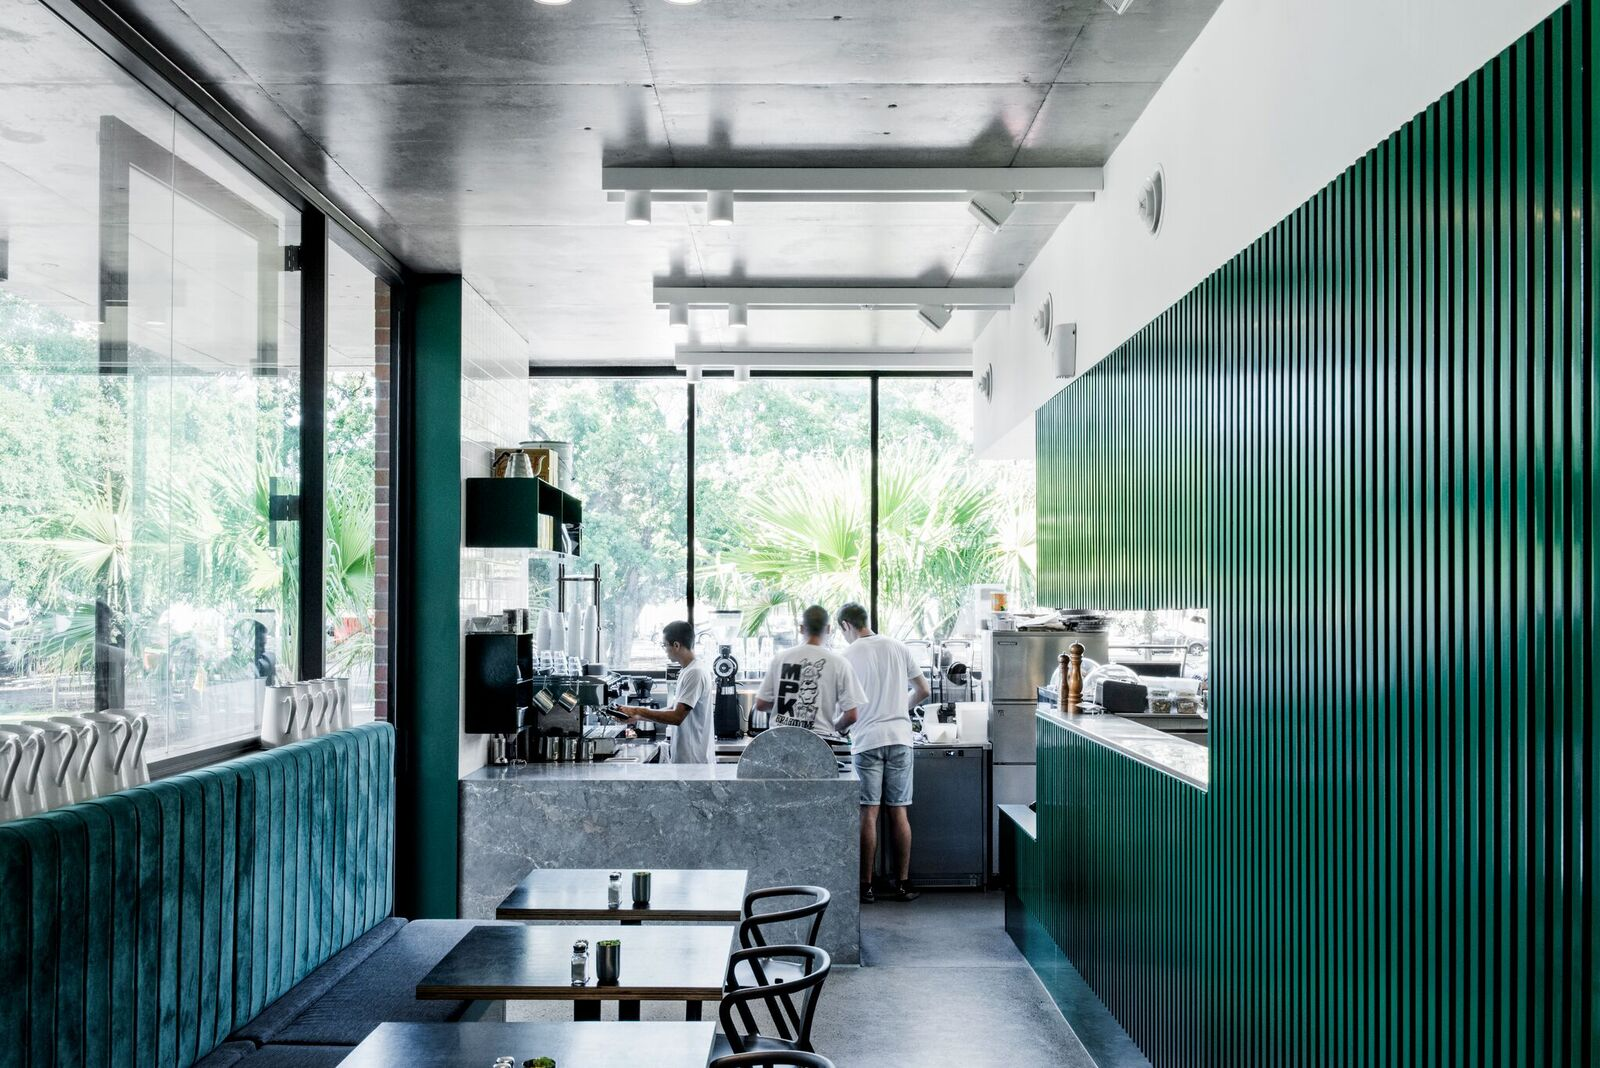 Pitch and fork Cafe. Interior Design:  Georgia Cannon  |  Image:  Cathy Schulser